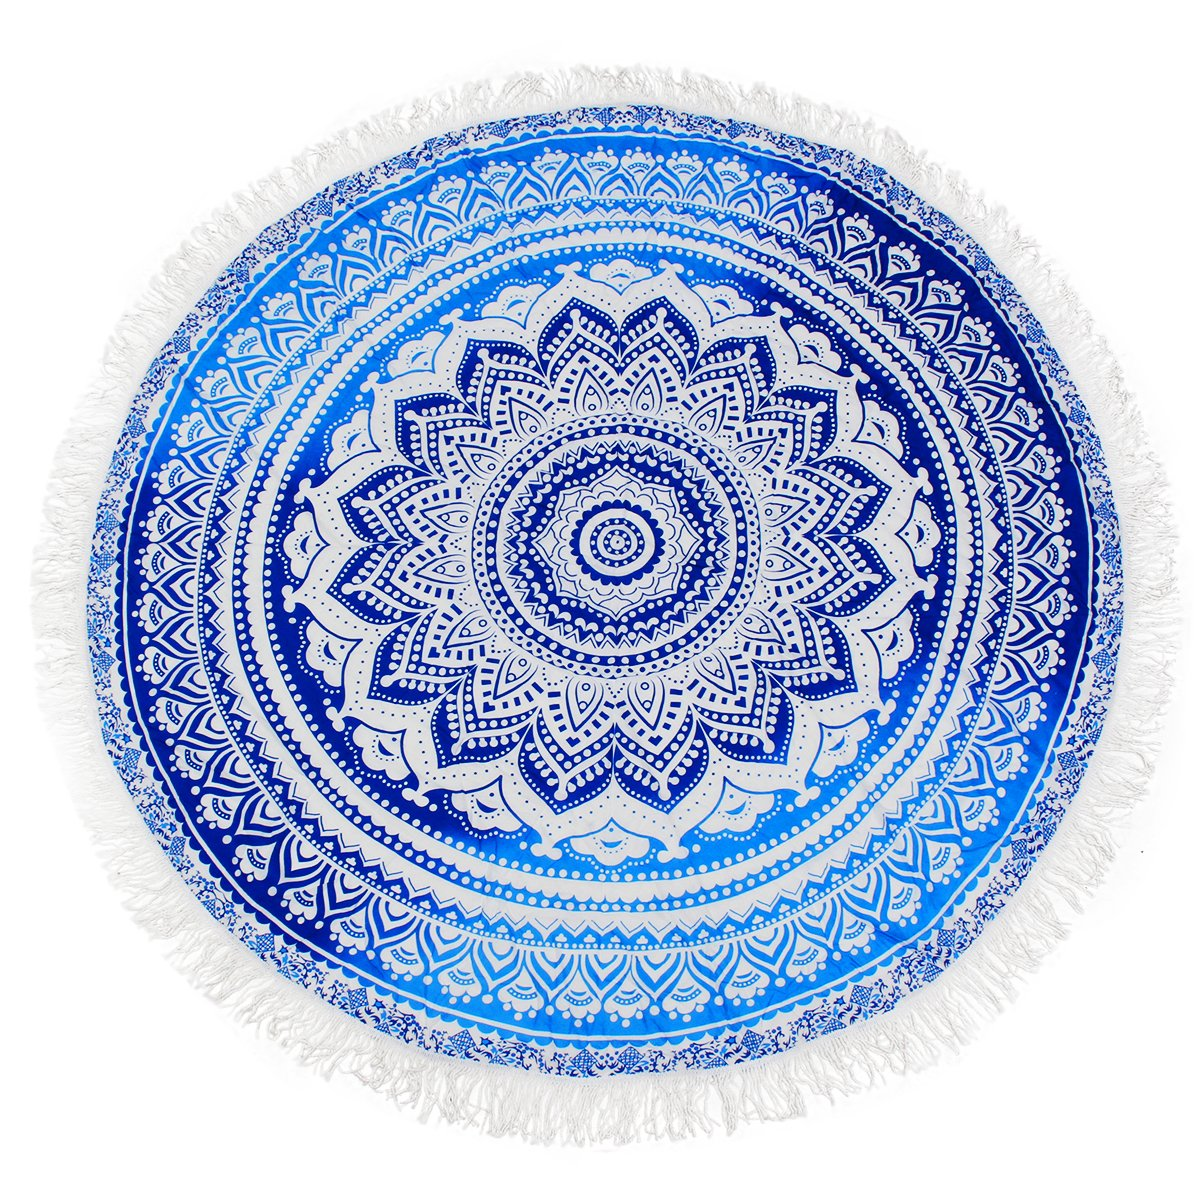 KING DO WAY Roundie Indian Mandala Tapestry Soft Breathable Tassels Beach Towel Used as Tablecloth Wall Hanging Decoration Hippie Beach Blanket Yoga Mat-Sunscreen Shawl Wrap Skirt 59'' DO WAYDeserve3977